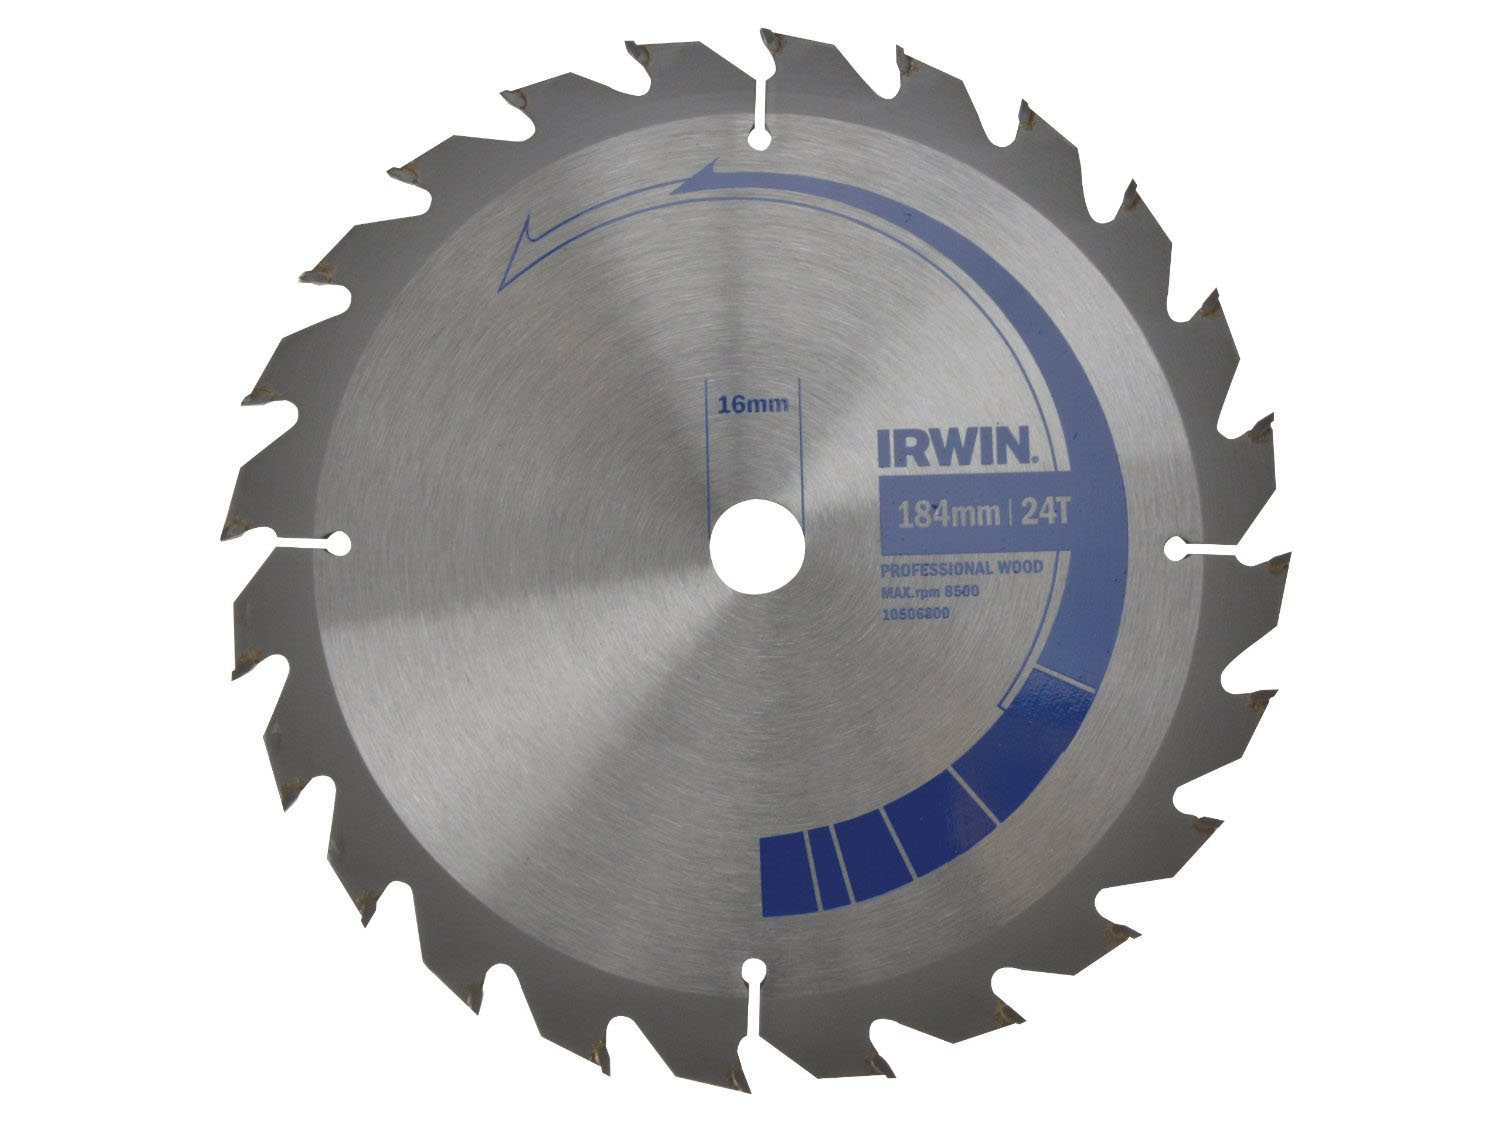 IRWIN 1907699 - Professional Wood Circular Saw Blade; 184x24Tx16mm